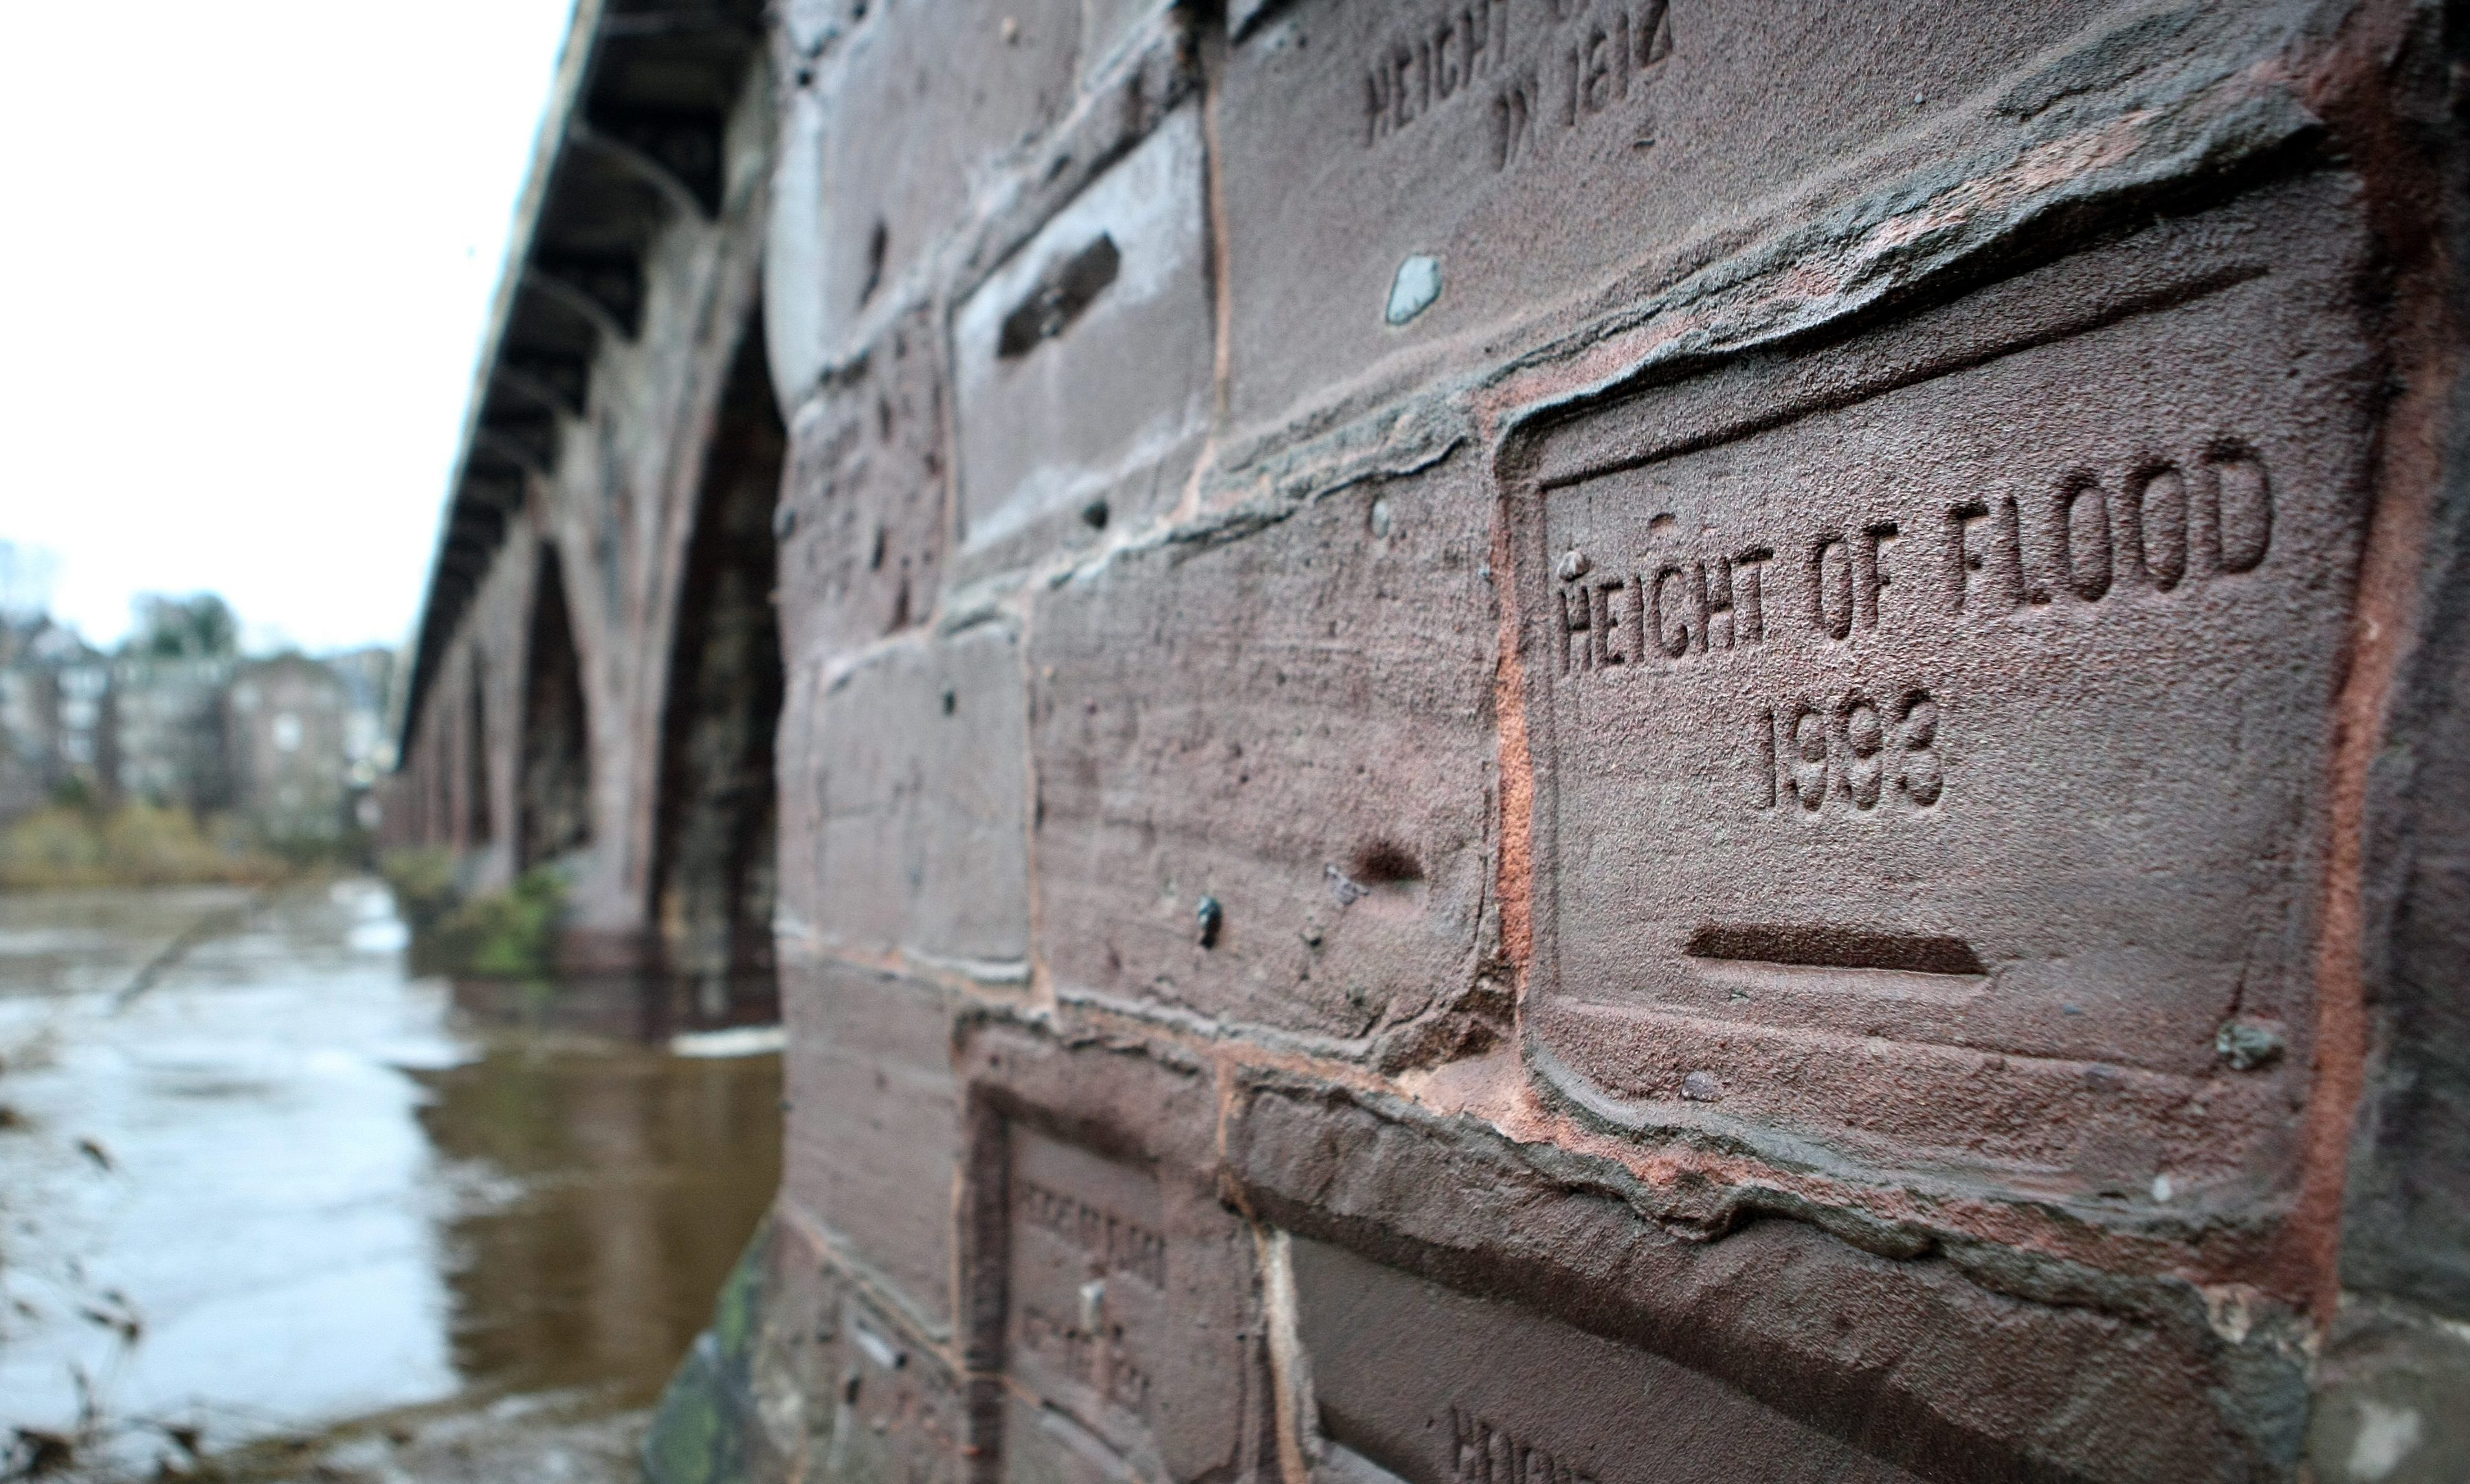 Marks on Smeatons Bridge show the height of floods the historic crossing has survived. It will undergo maintenance as part of the council programme.